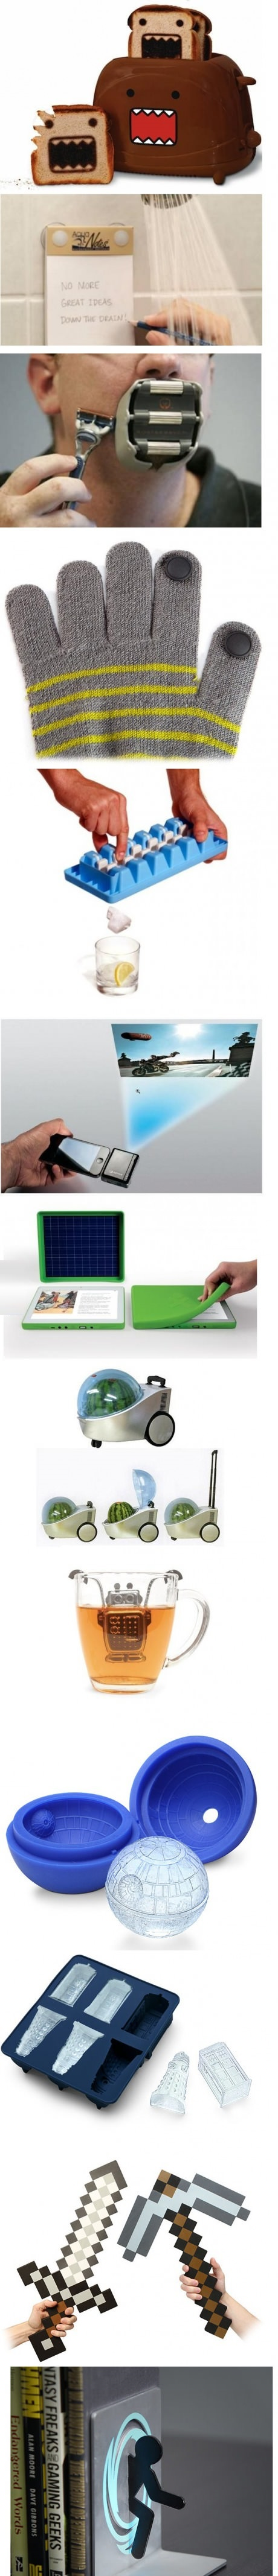 funny-picture-awesome-gadgets